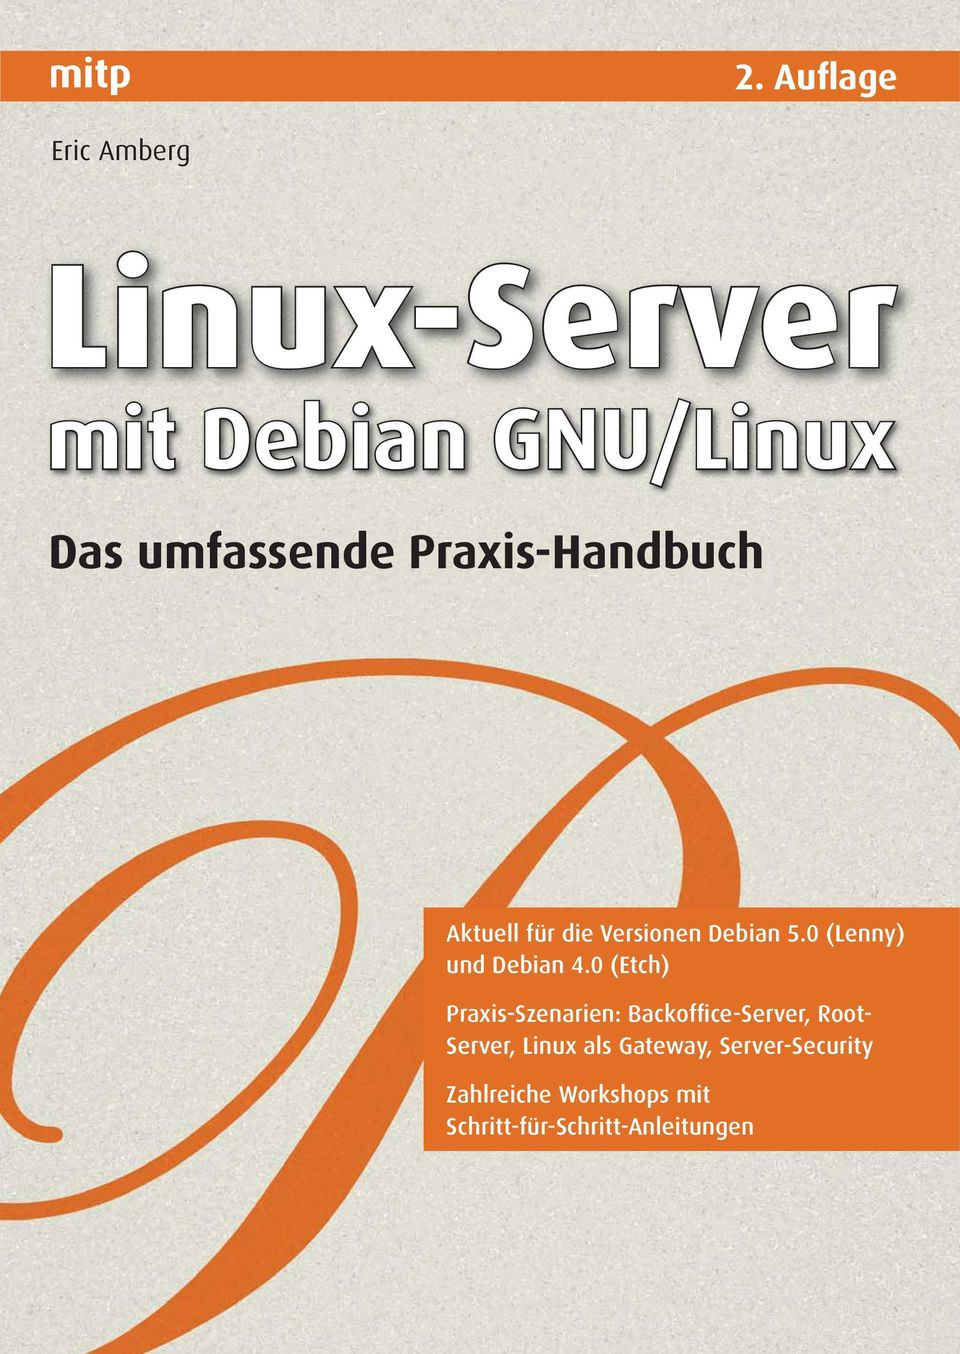 0 (Etch) Praxis-Szenarien: Backoffice-Server, Root- Server, Linux als